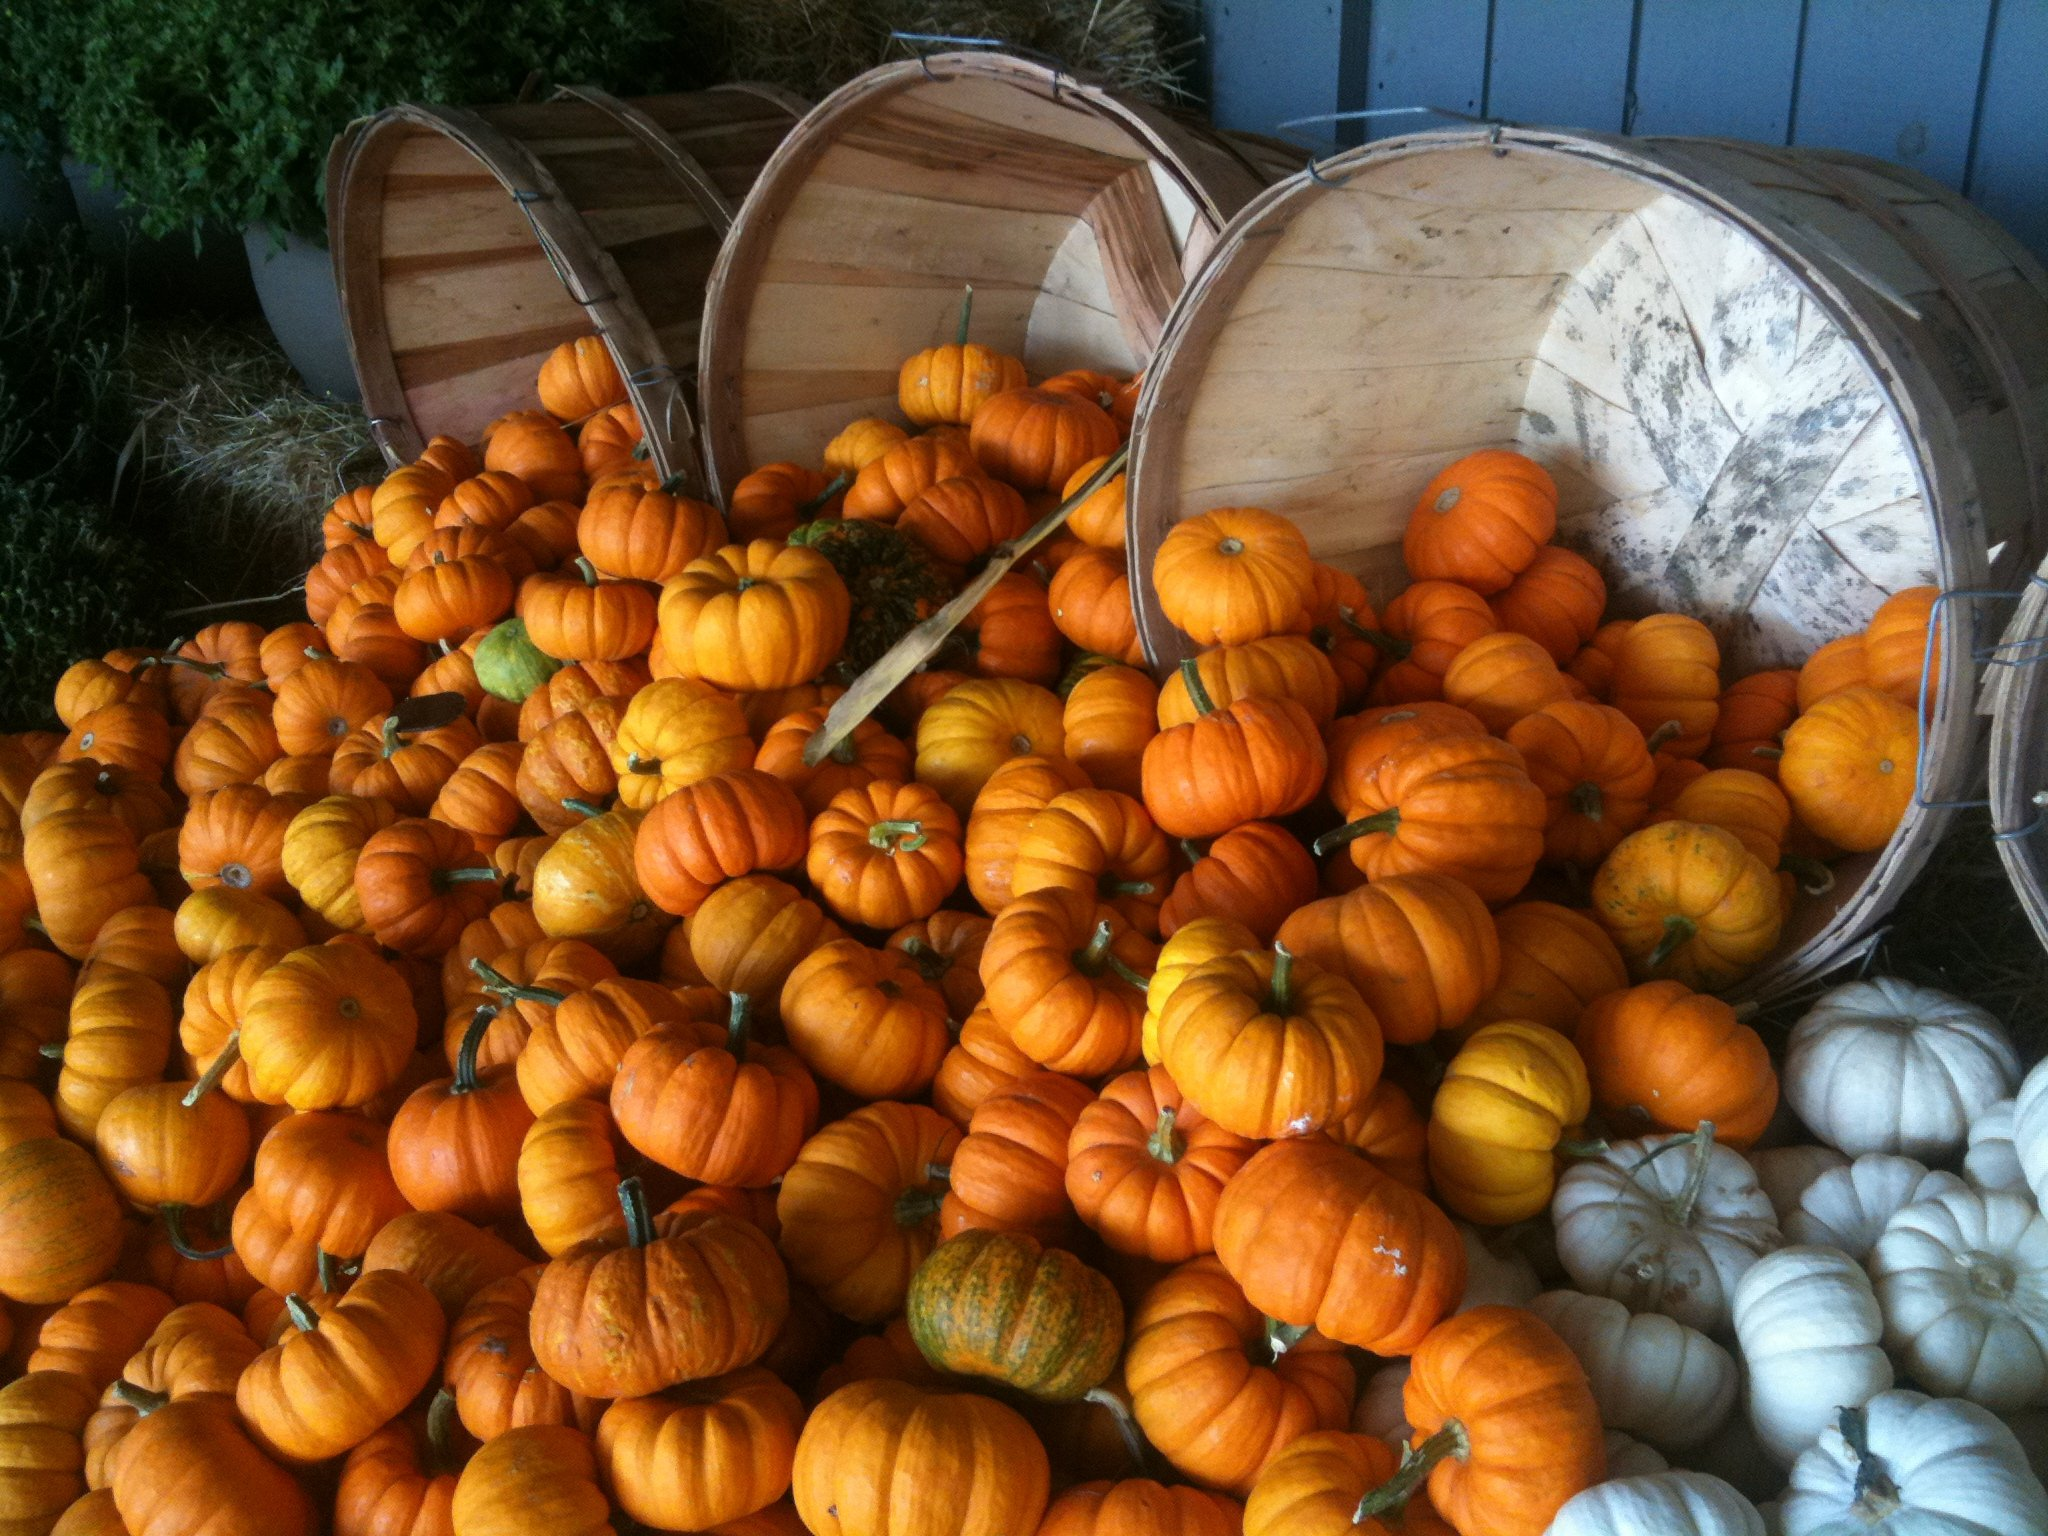 It's Pumpkin Time! Healthy Food For Late Summer